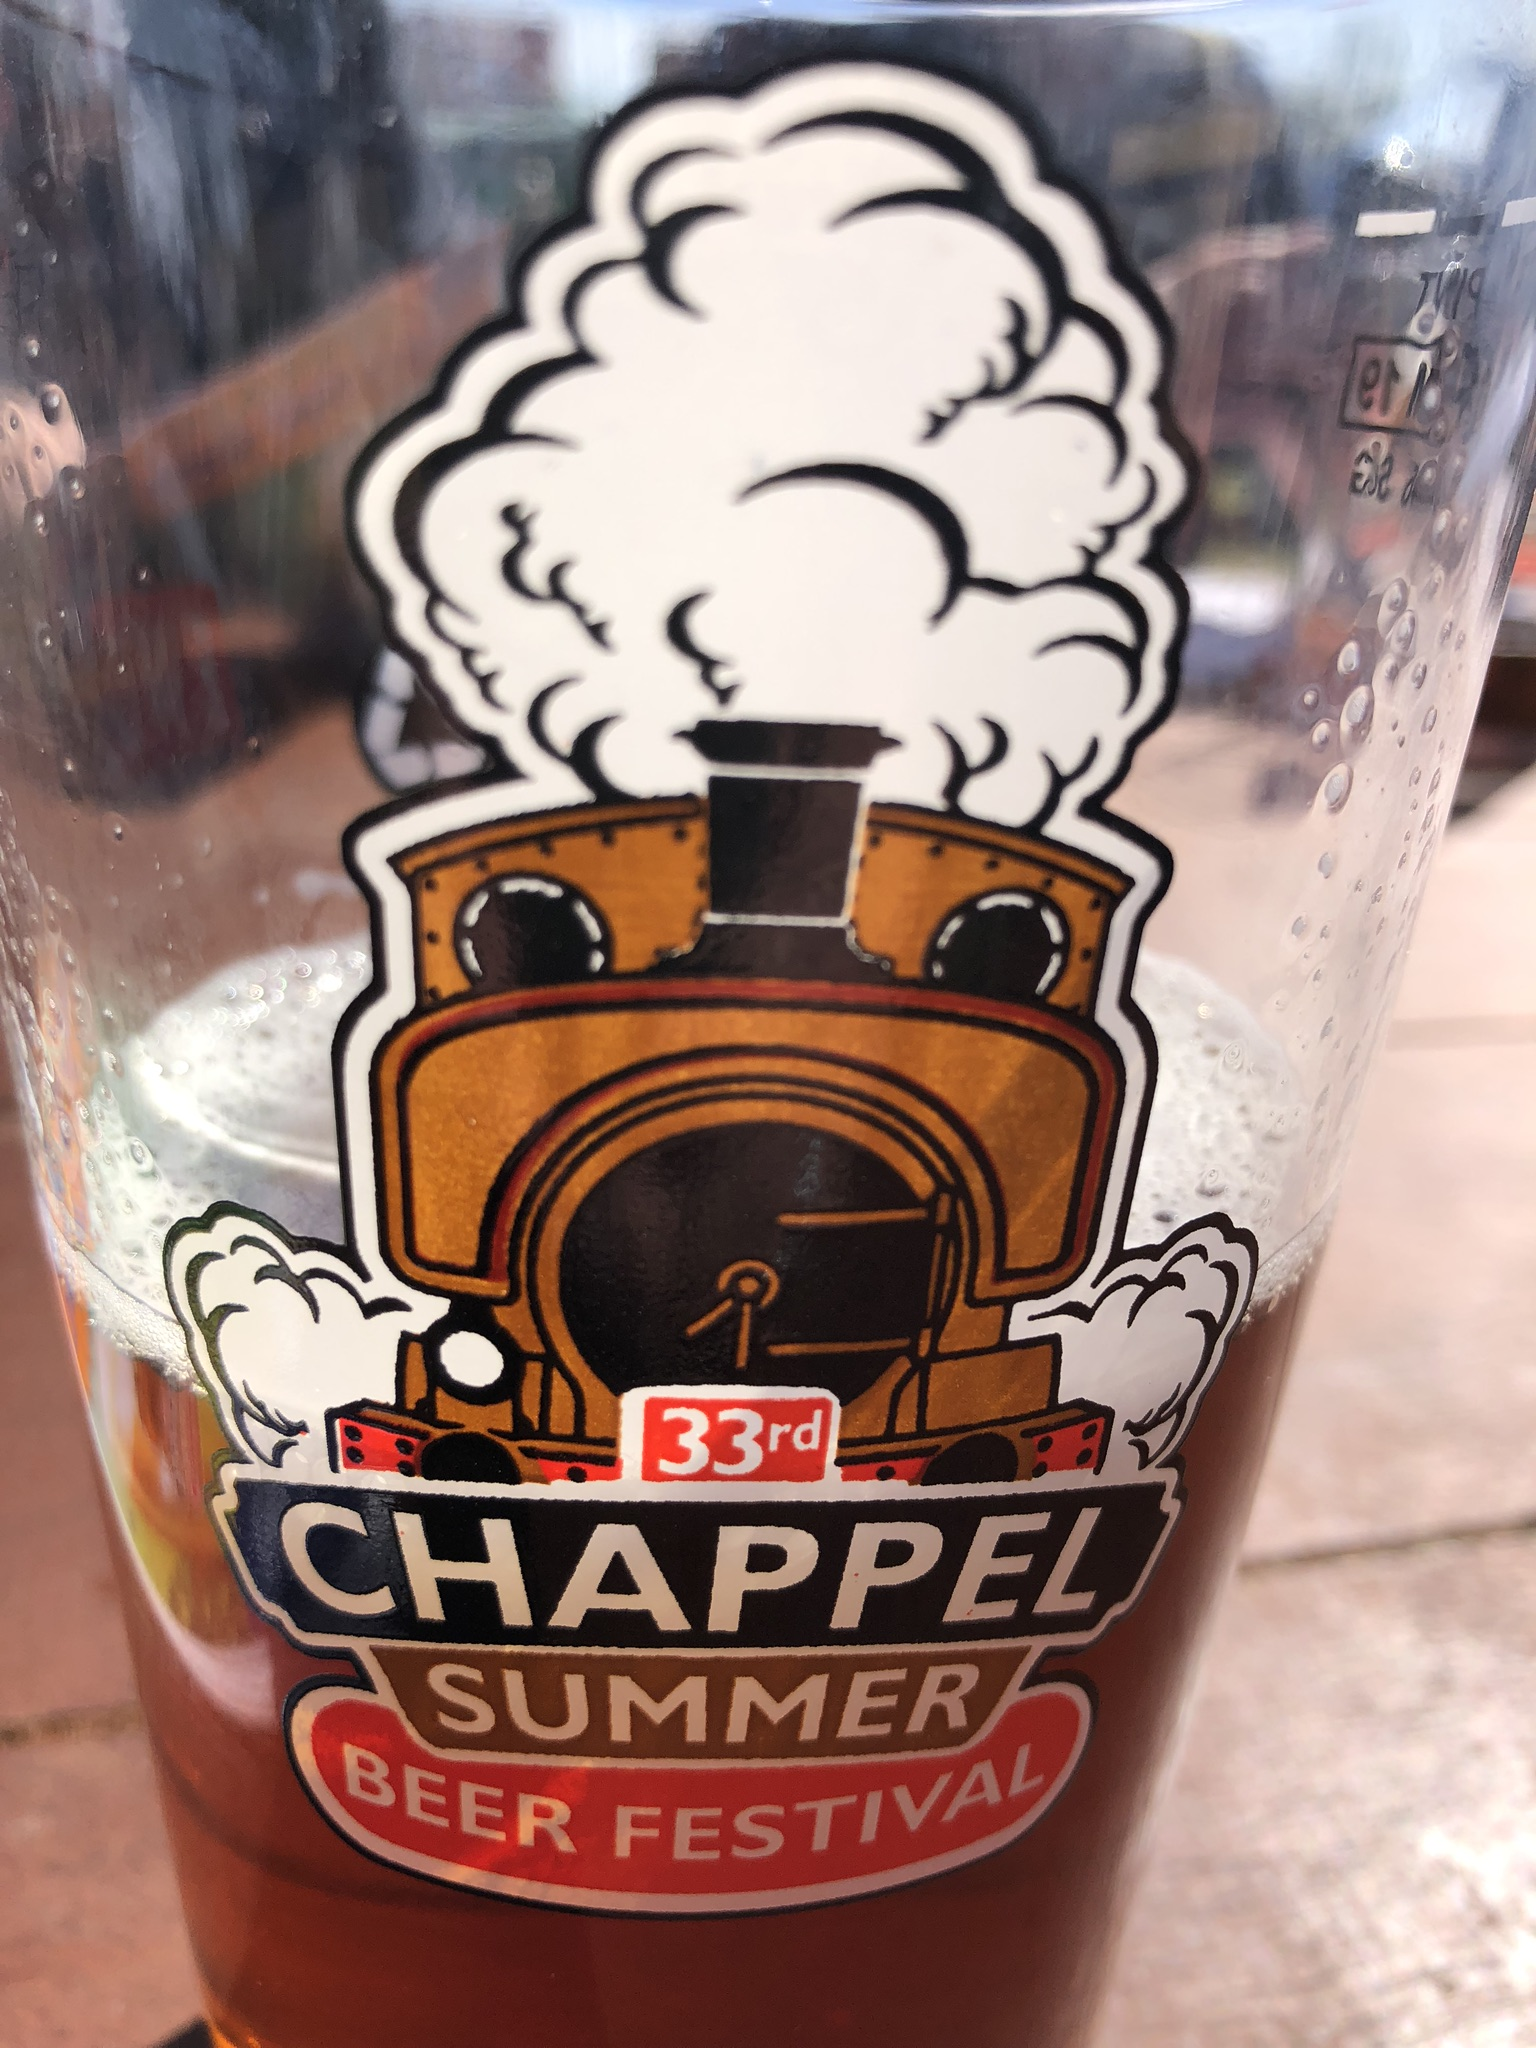 Chappel Summer Beer Festival Glass